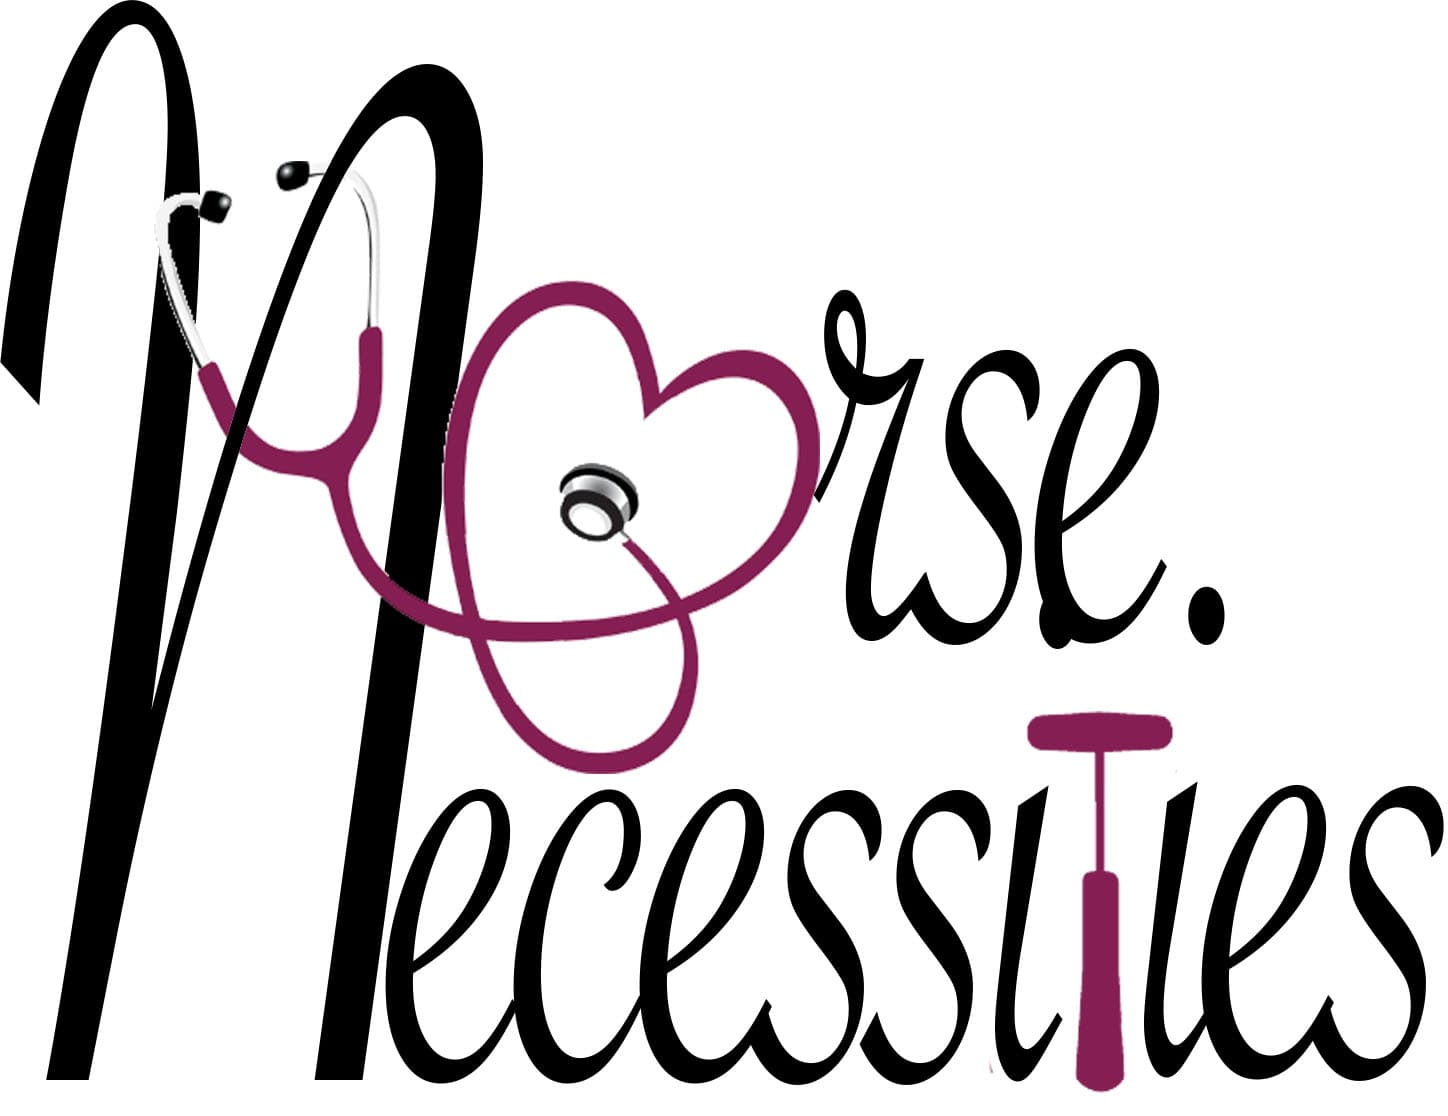 Nurse Necessities LLC